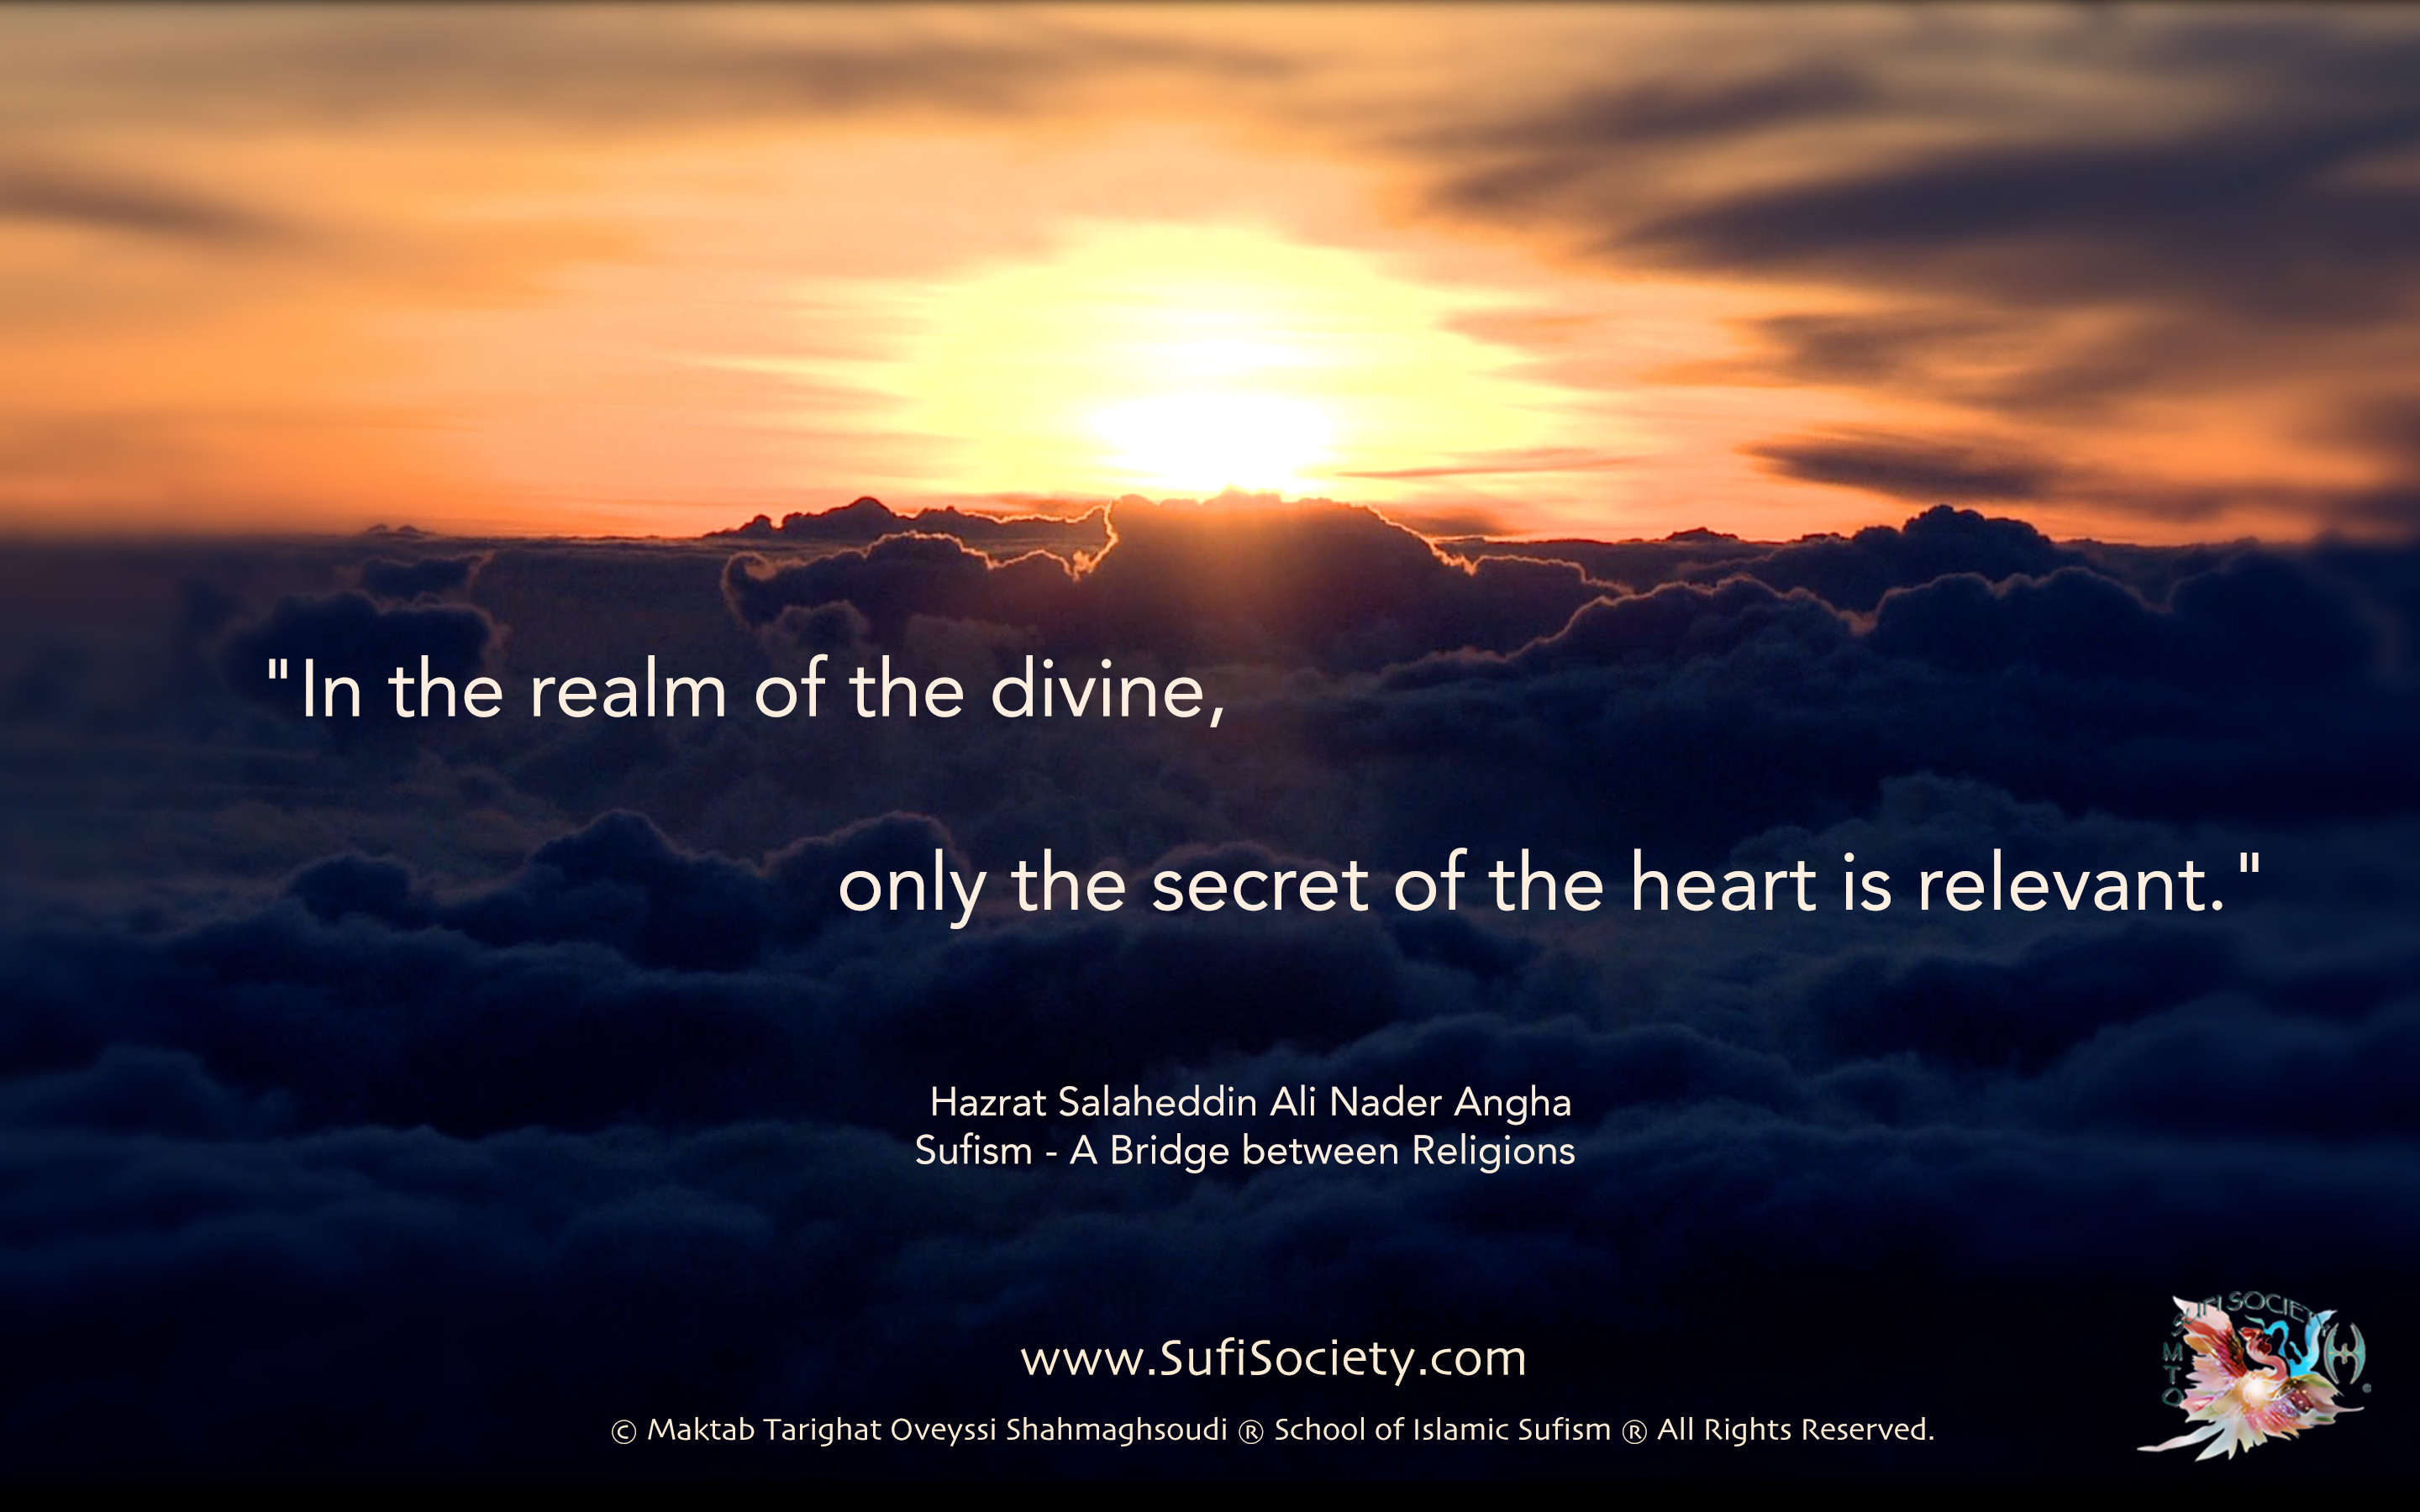 """In the realm of the divine, only the secret of the heart is relevant."" Hazrat Salaheddin Ali Nader Angha Sufism - A Bridge between Religions"